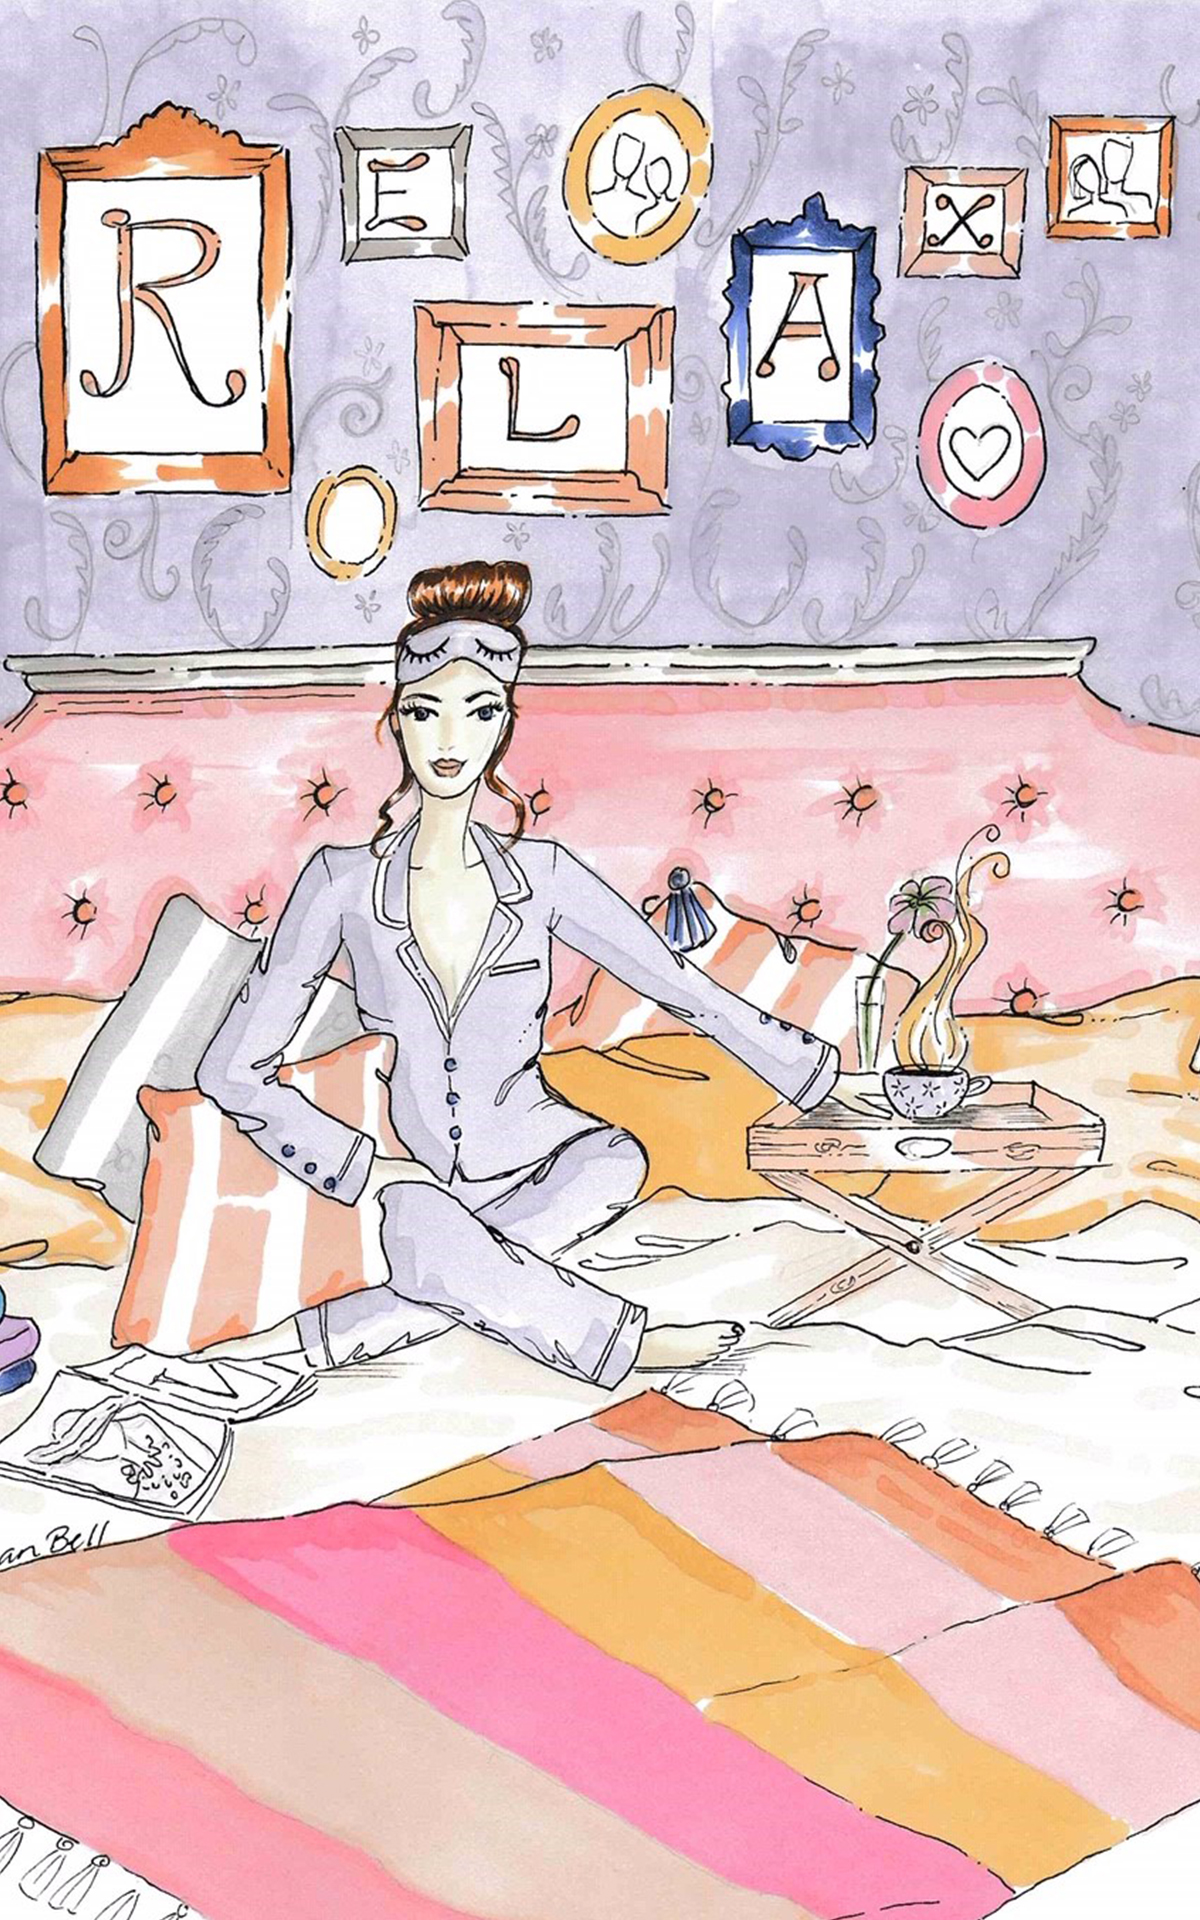 Artist Gillian Bell Illustrations for Kildare Village Relaxation